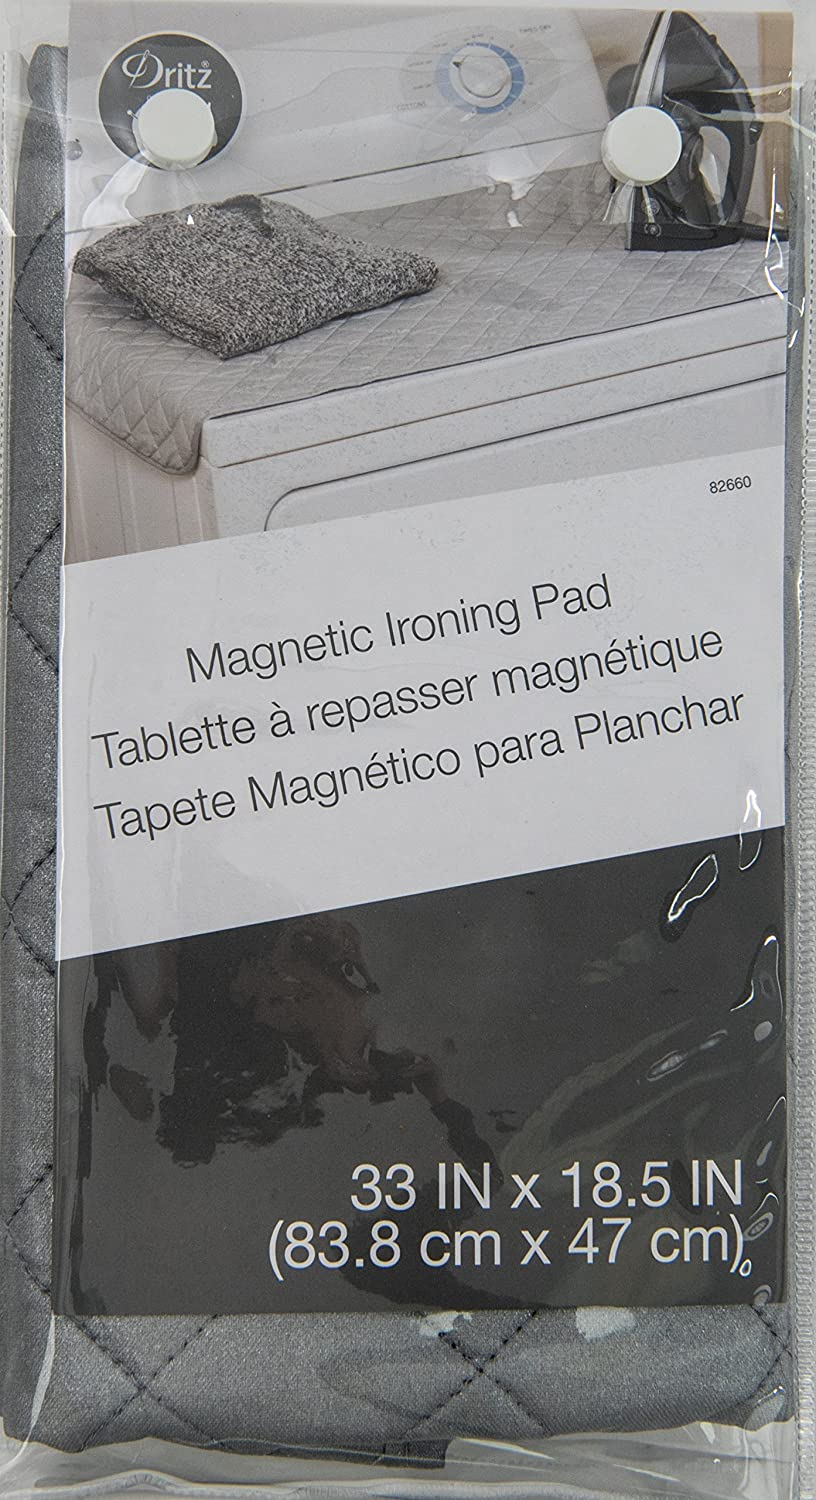 Dritz Clothing Care Magnetic Ironing Pad Prym Consumer 82660